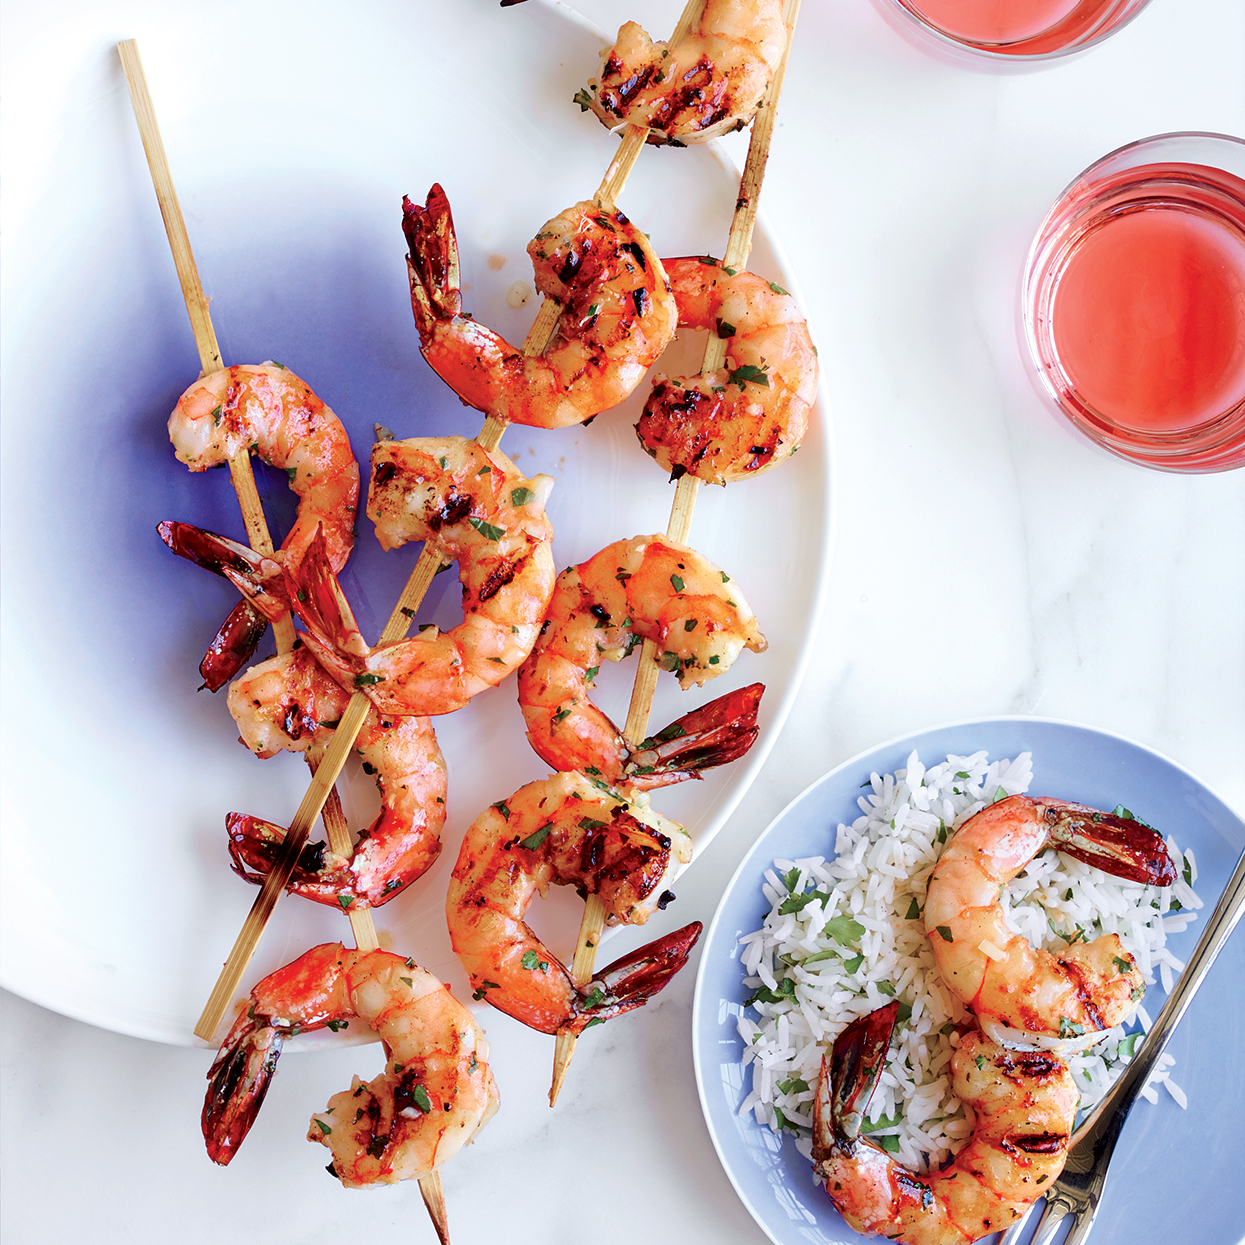 201406-r-garlicky-grilled-shrimp.jpg